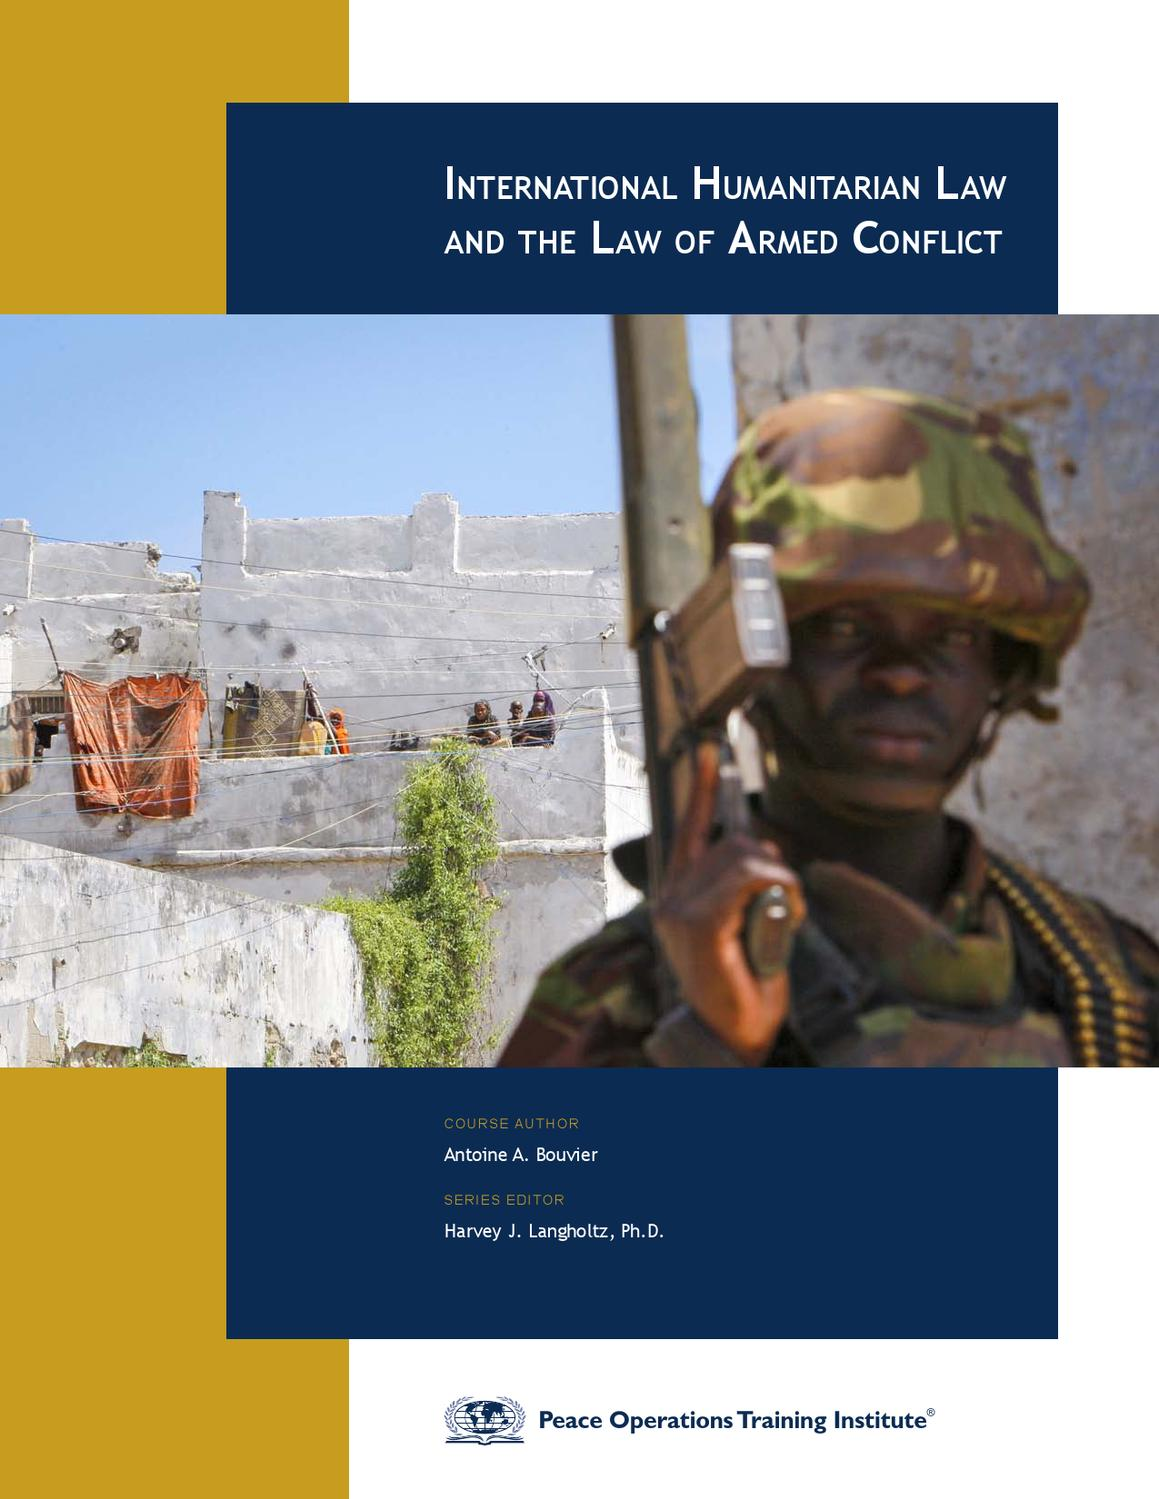 international humanitarian law International humanitarian law: a comprehensive introduction is an introductory handbook that aims to promote and strengthen knowledge of international humanitarian law (ihl) among academics, weapon-bearers, humanitarian.